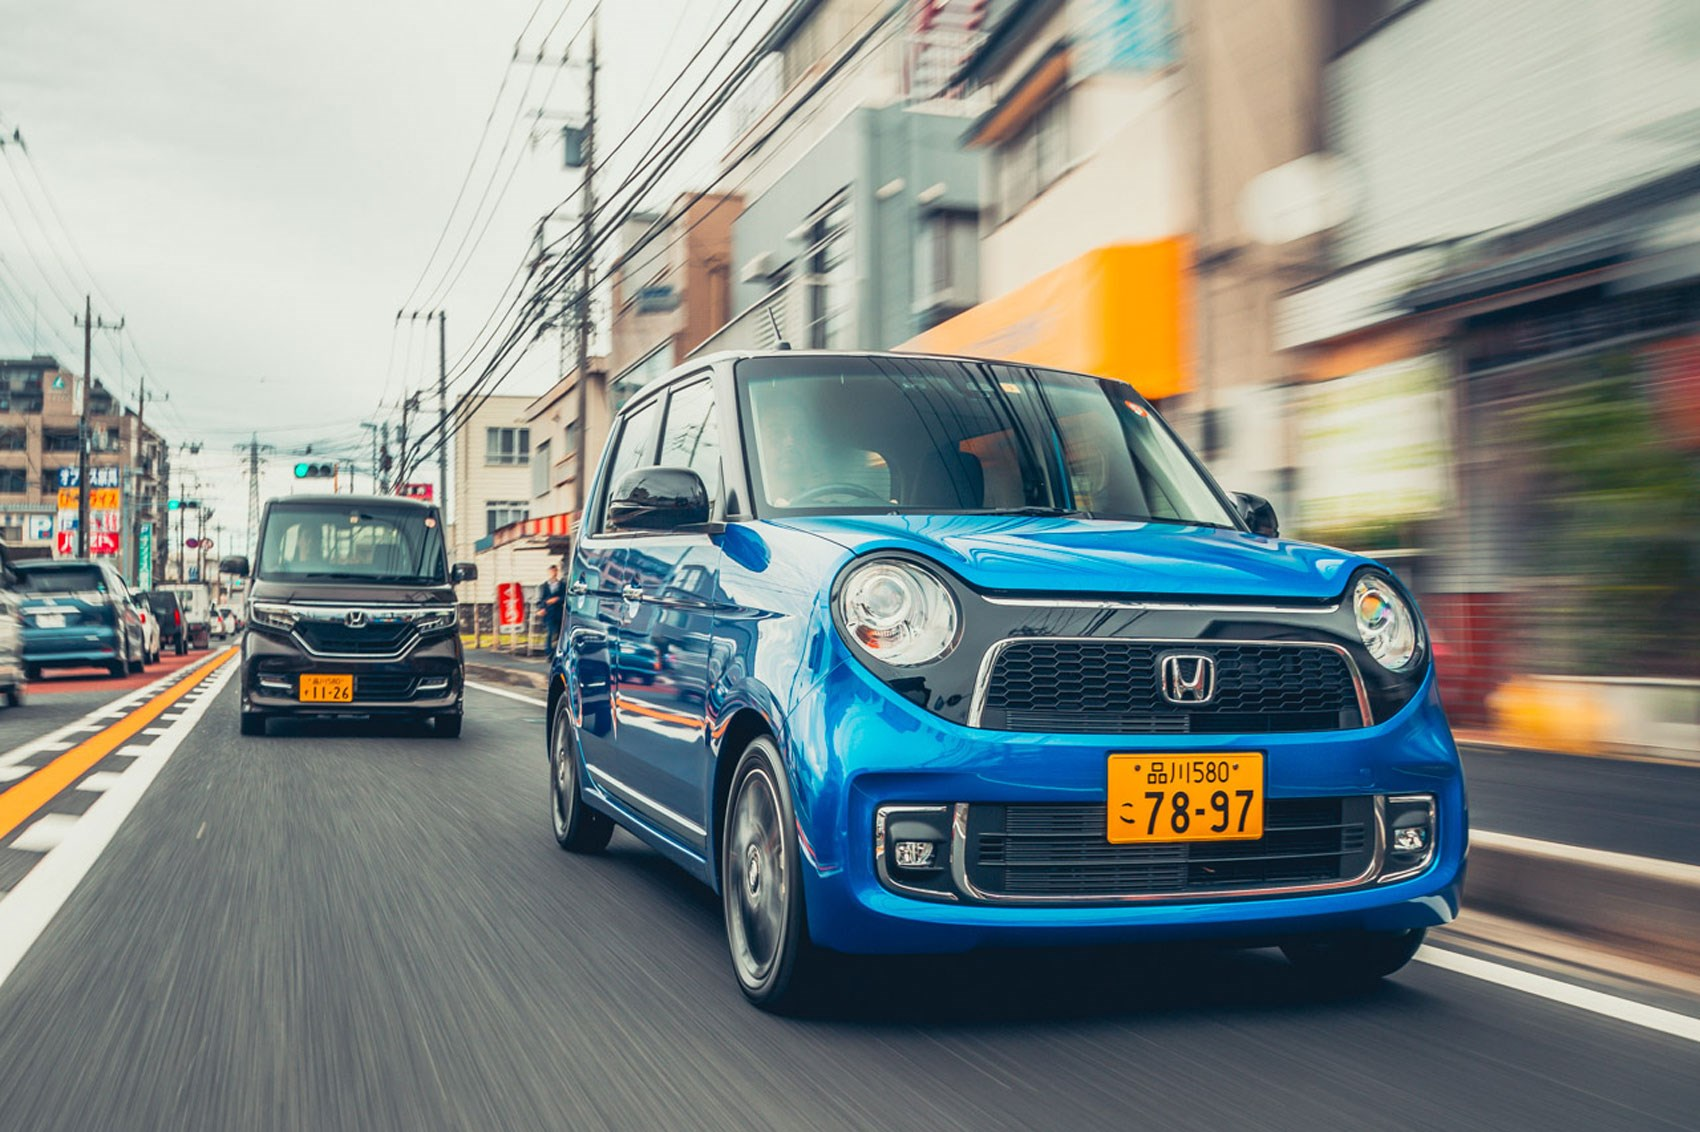 5 Things You Learn Driving A Honda N One Kei Car In Tokyo